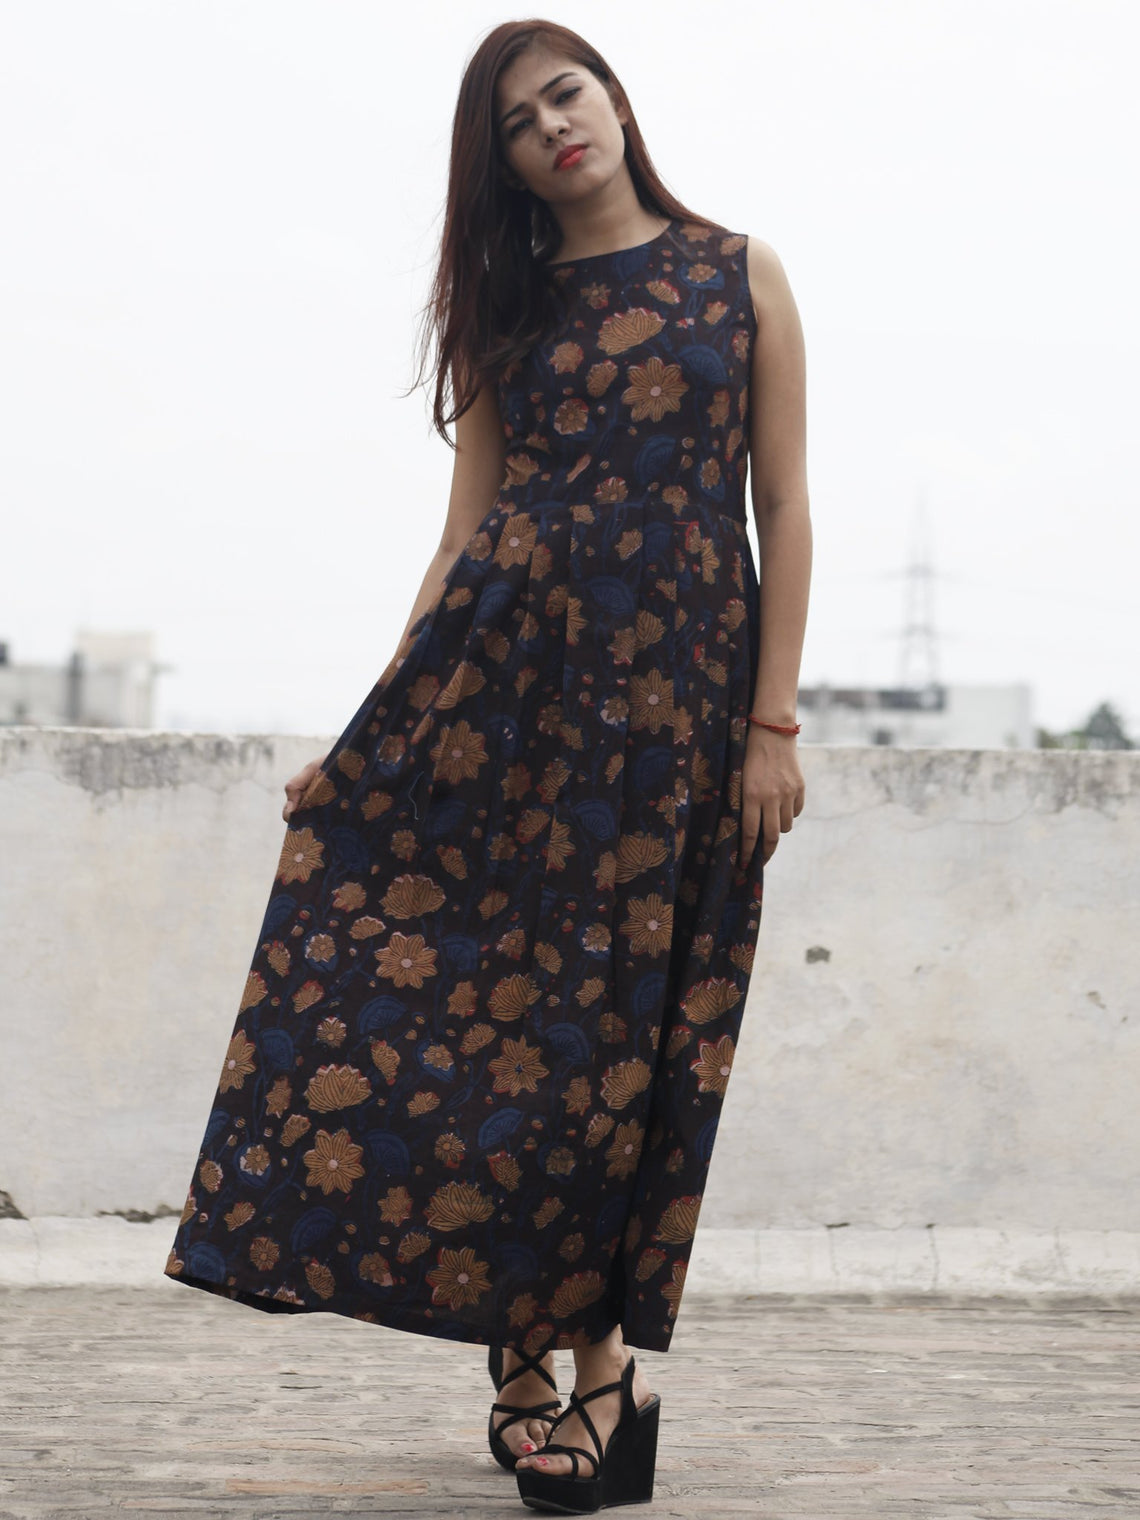 Indigo Brown Black Long Sleeveless Hand Block Printed Cotton Dress With Knife Pleats & Side Pockets - D32F984